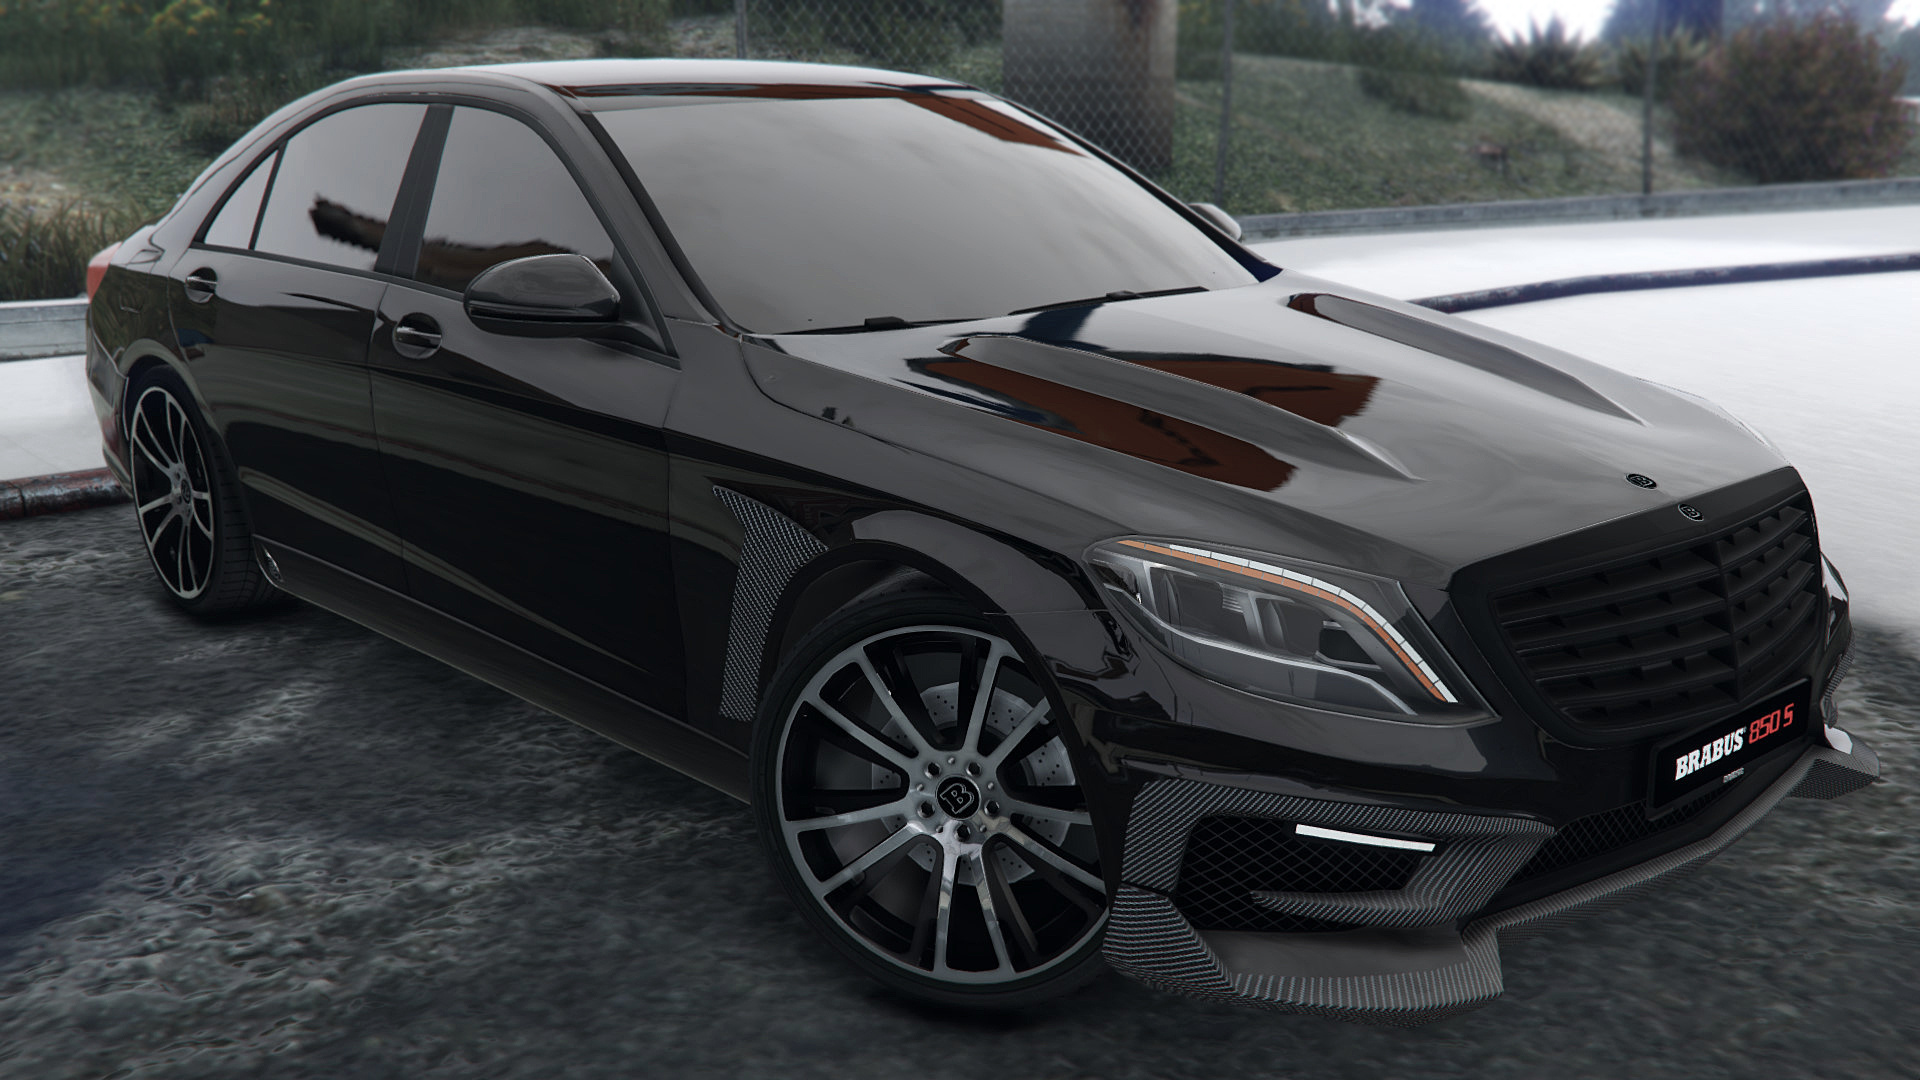 Mercedes benz brabus 850 s class replace gta5 for Mercedes benz 850